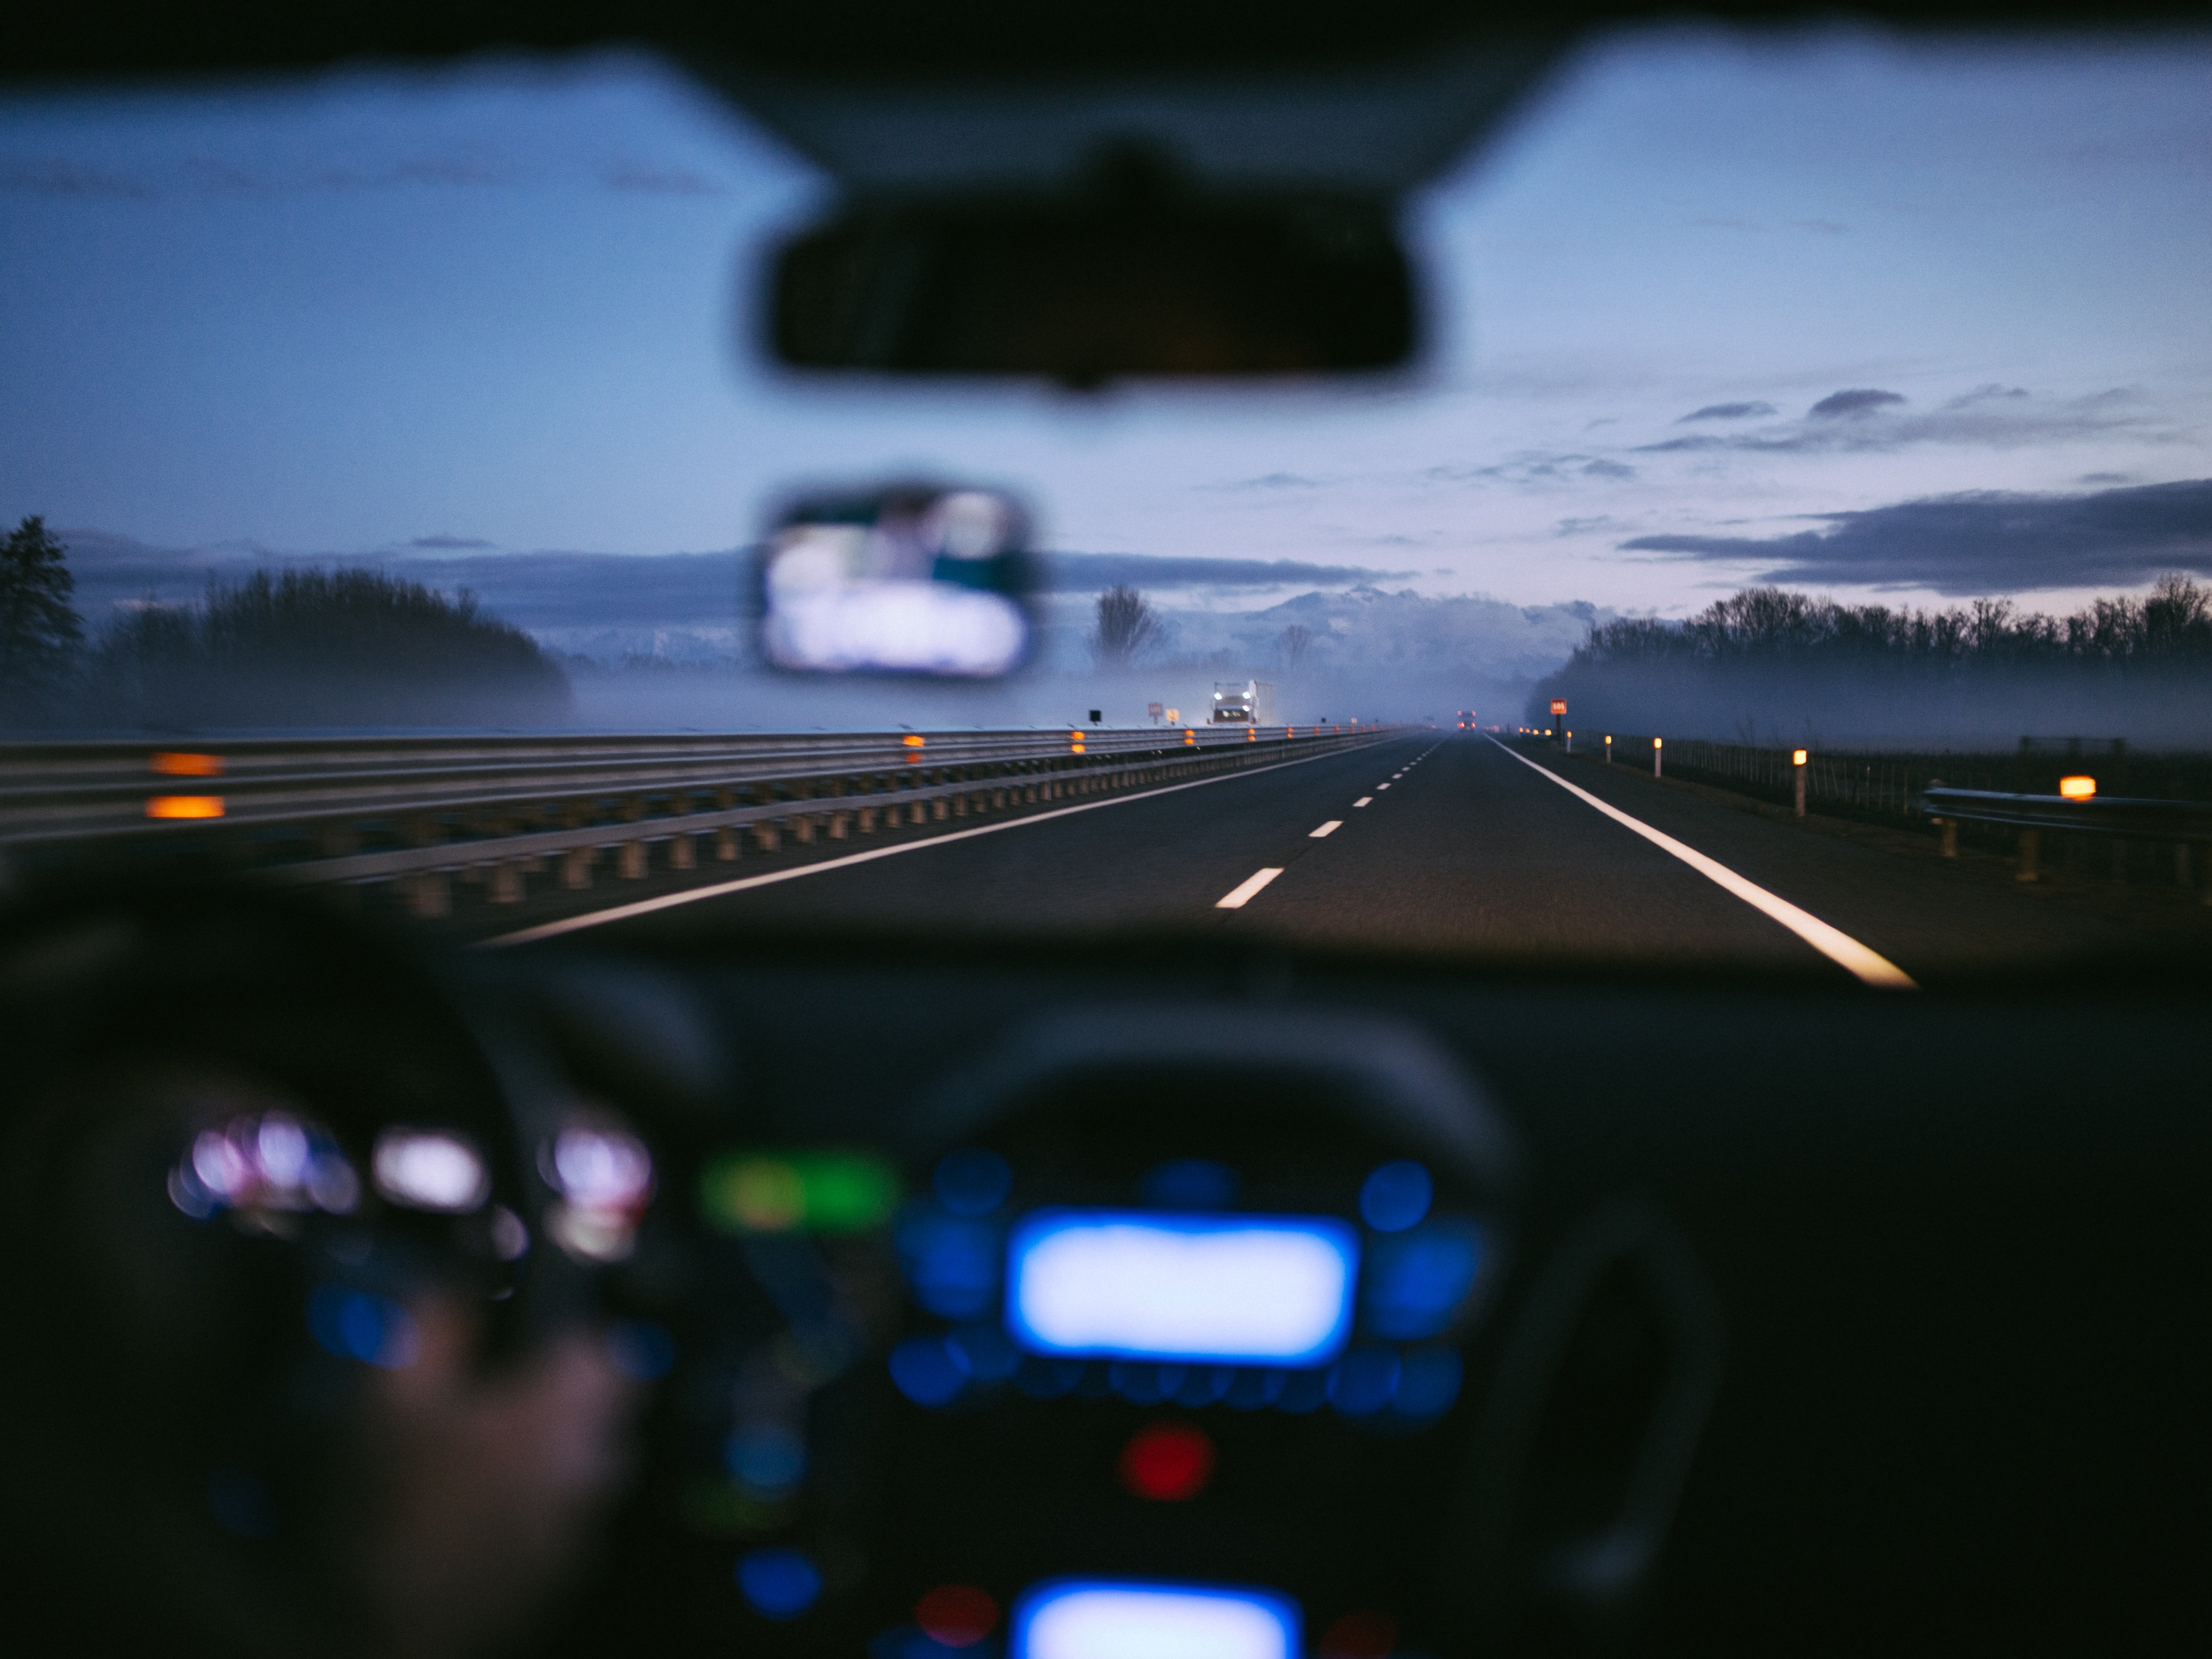 learn car driving quickly for driving license